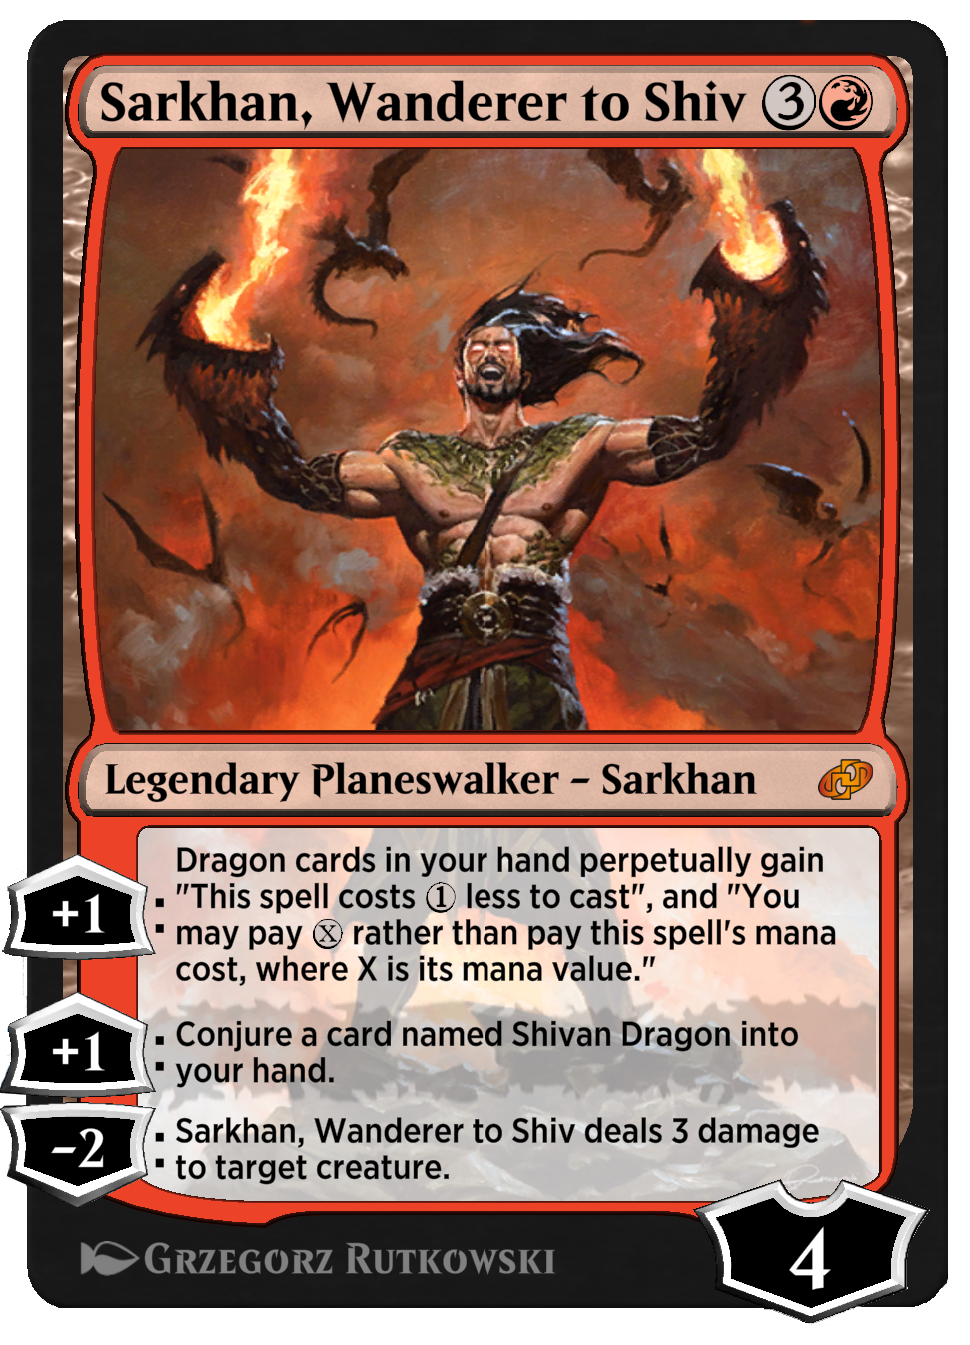 Sarkhan, Wanderer to Shiv new